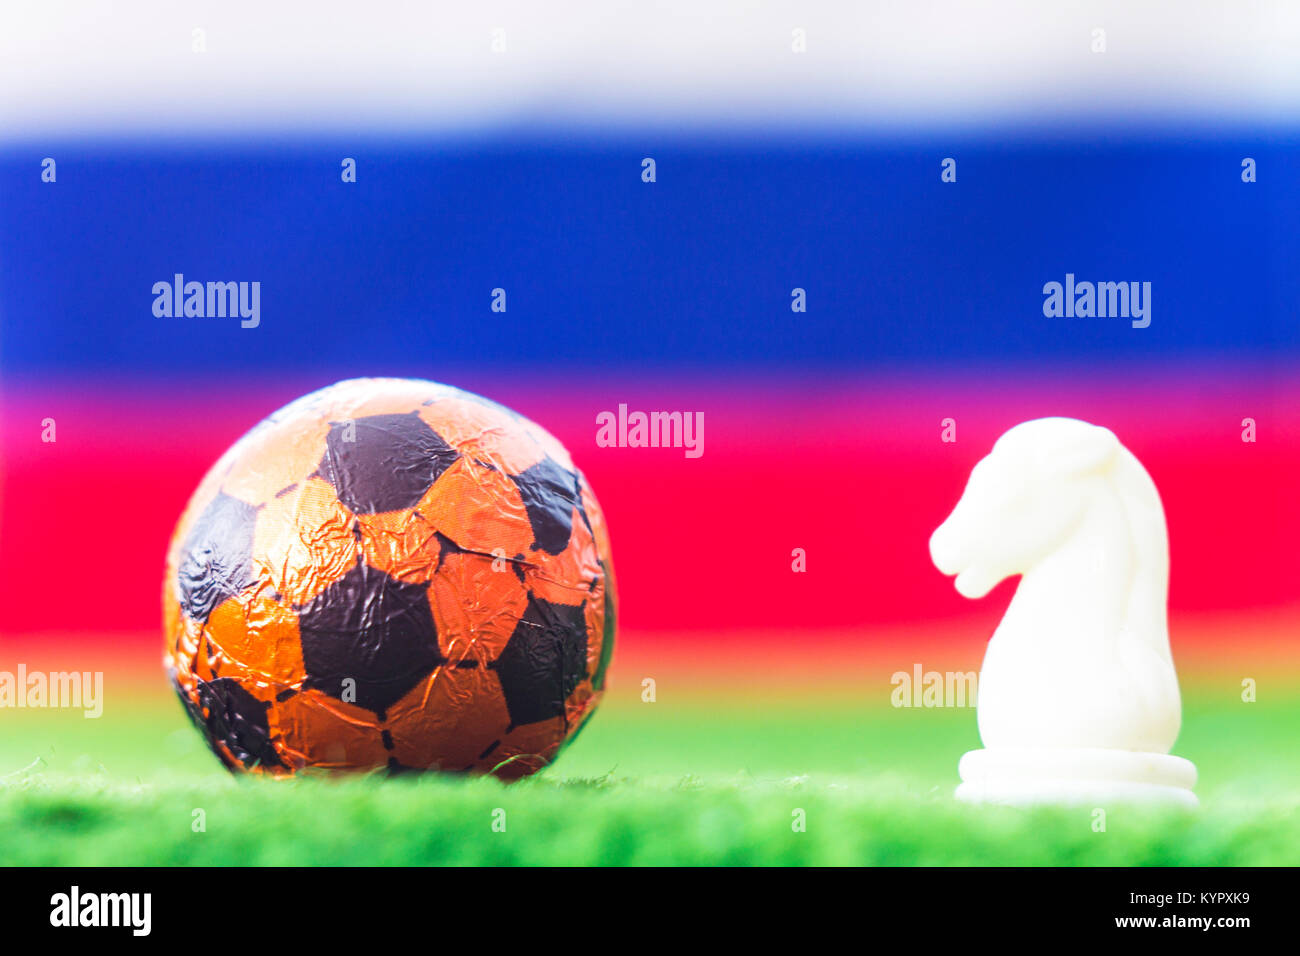 Russia Flag Chess as a football. FIFA World Cup 2018.Ball and white figure on the green grass. - Stock Image